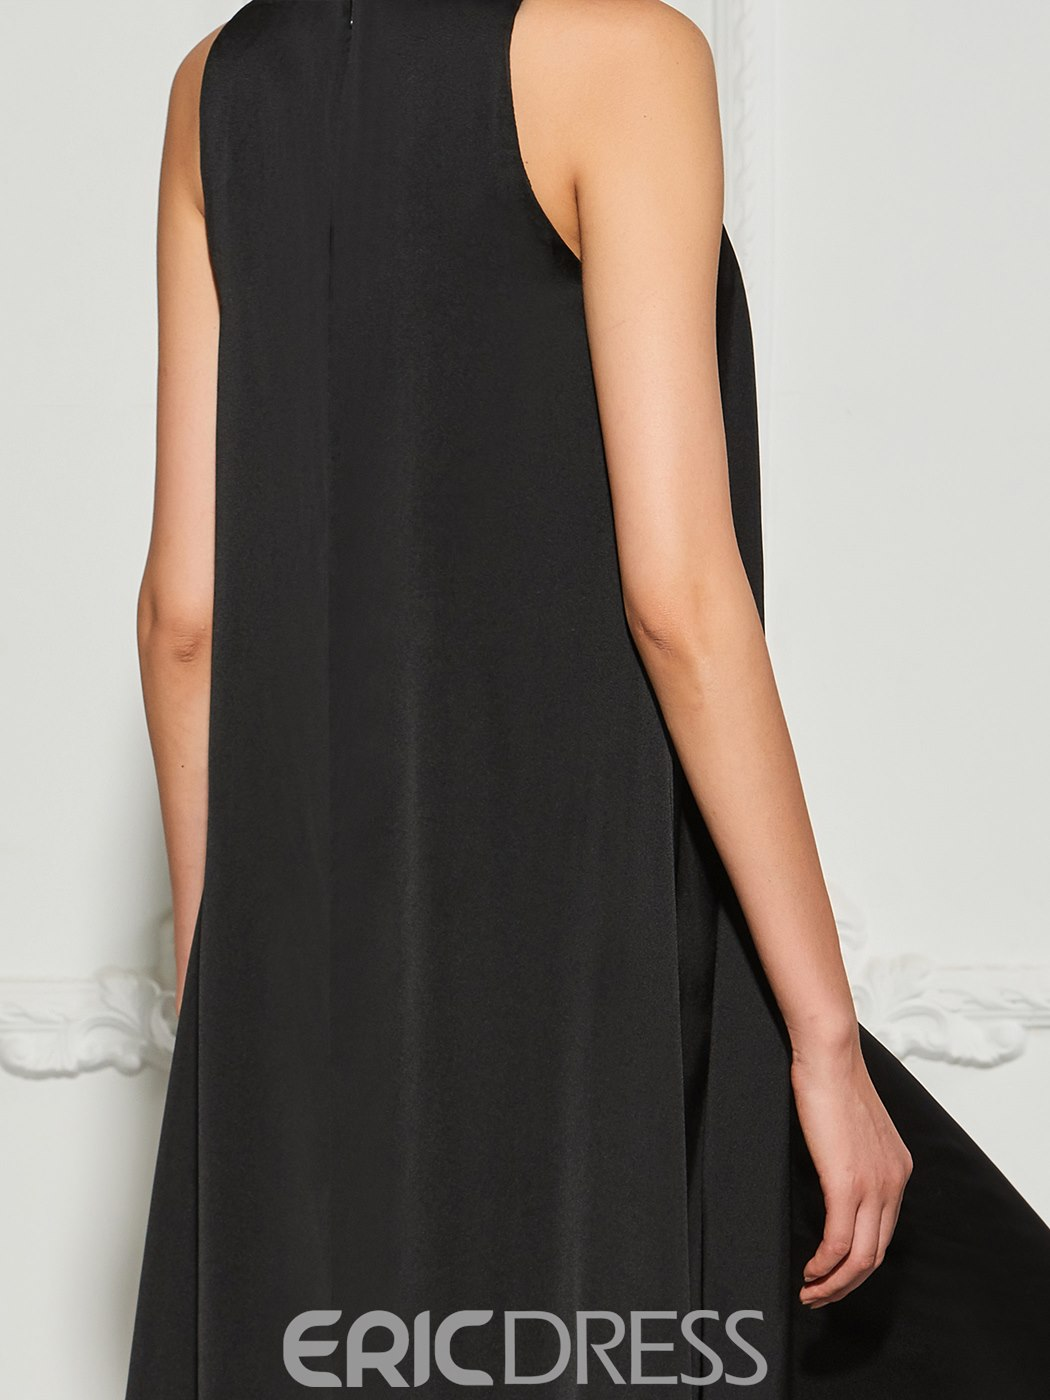 Ericdress A Line Deep Neck Beaded Prom Jumpsuit With Train